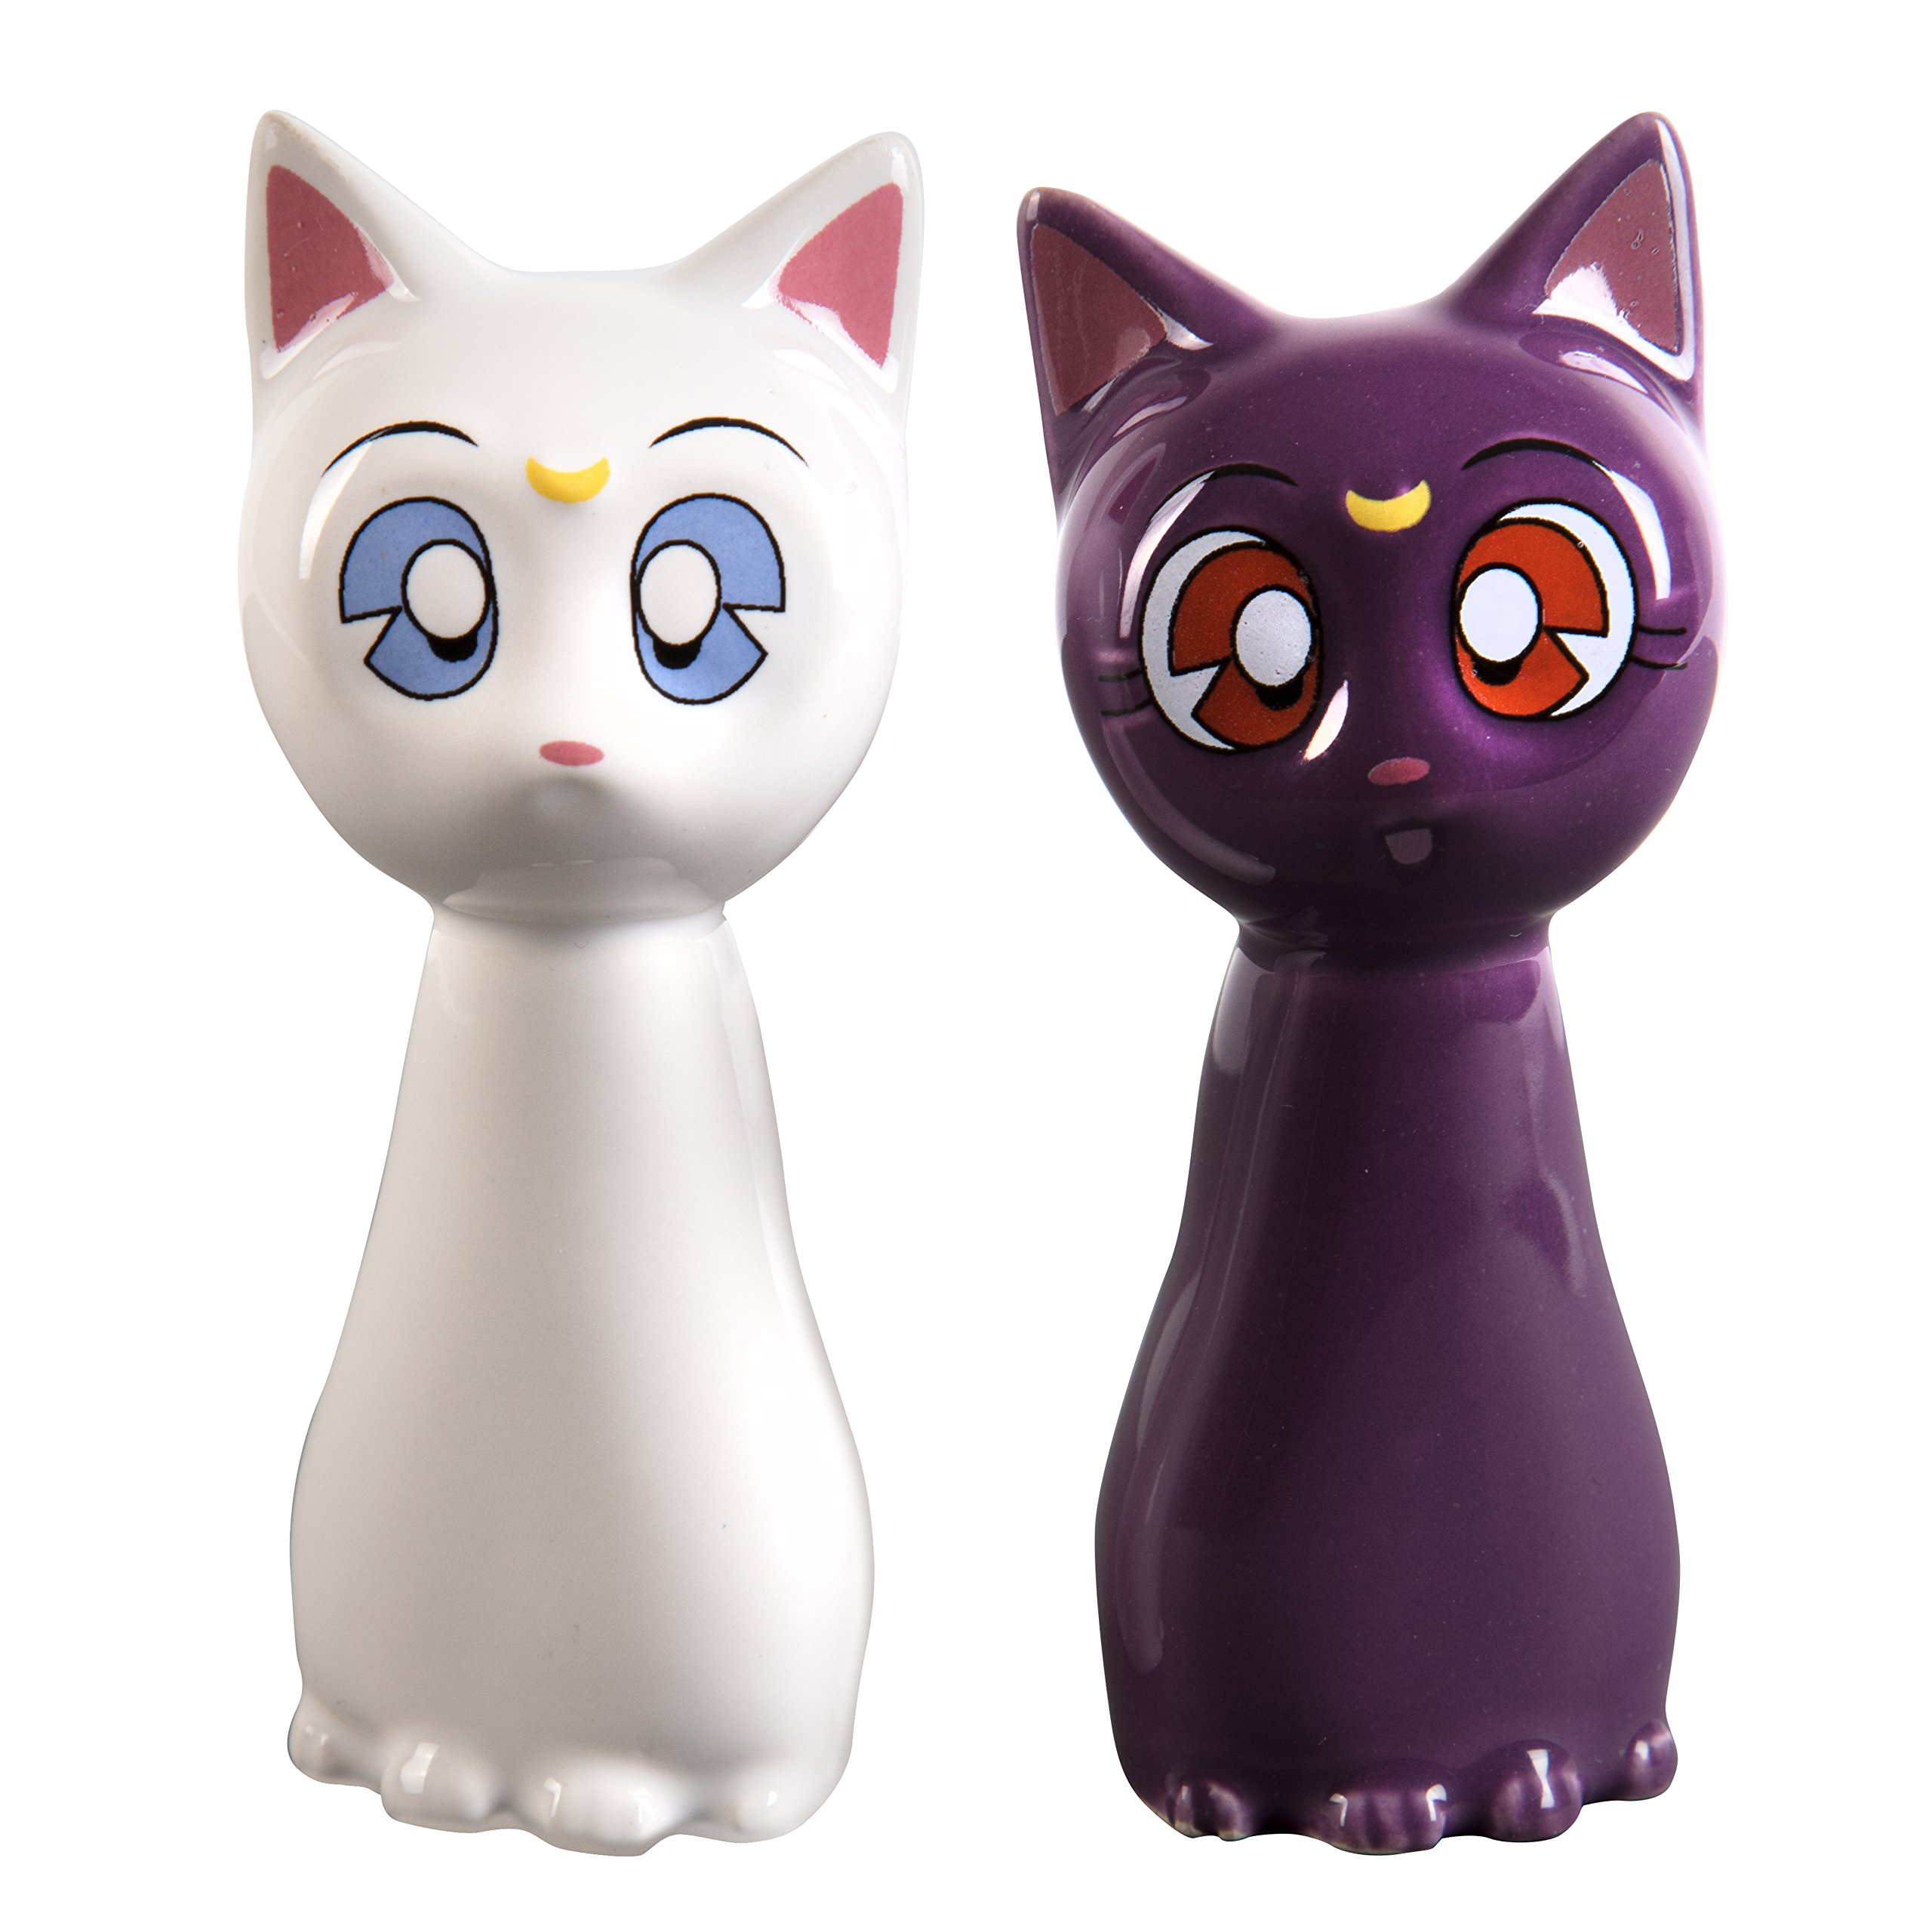 Sailor Moon Ceramic Salt and Pepper Shakers - Luna and Artemis Set For Your Kitchen